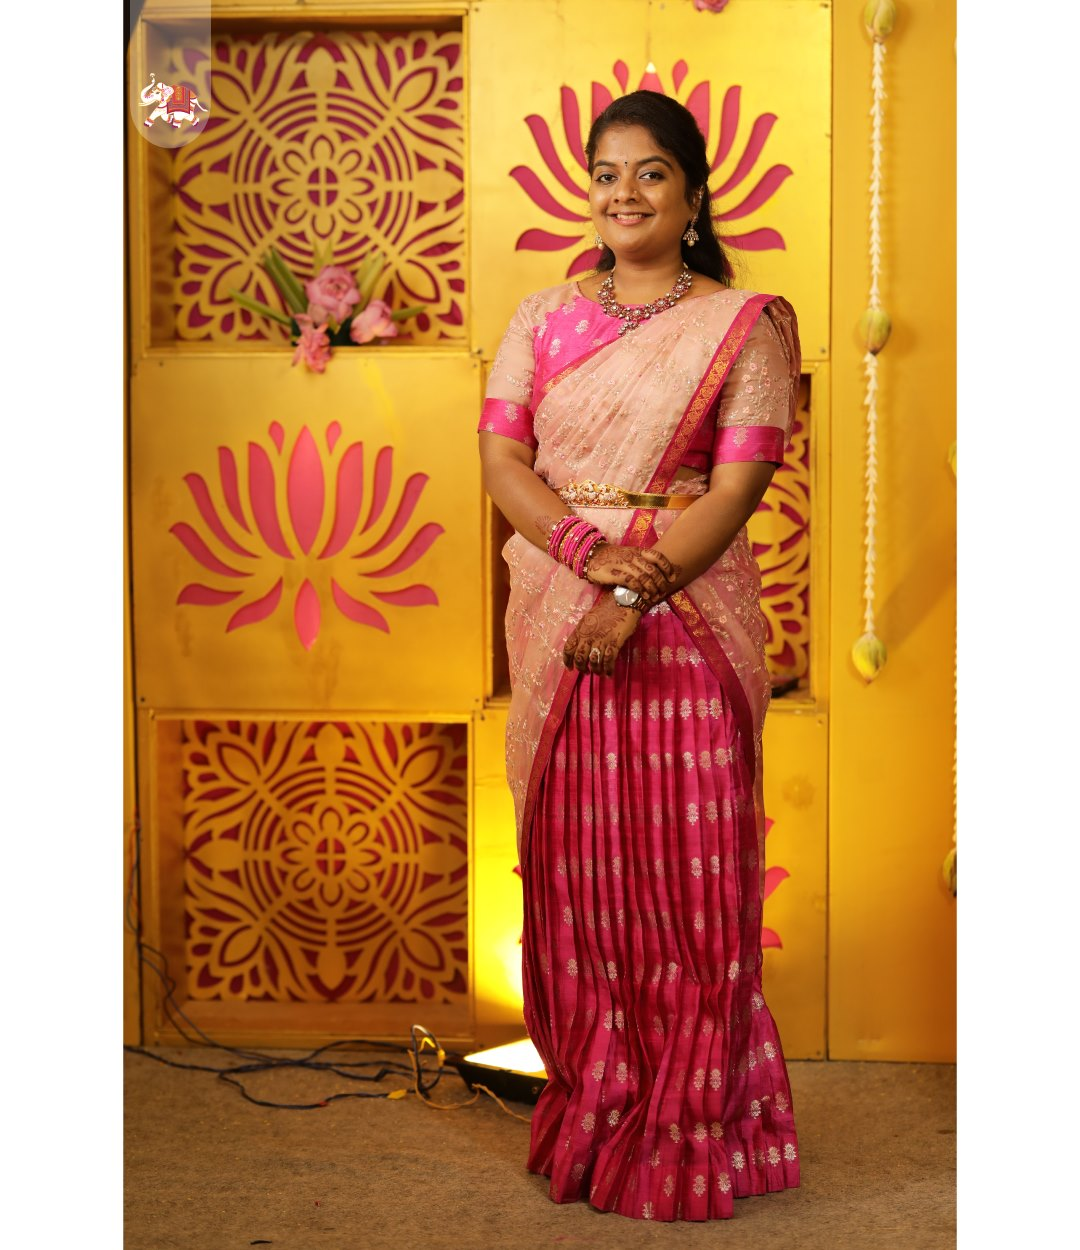 Dhanya looking gorgeous in pink Banarasi silk half saree! Pastel pink floral embroidered organza dupatta with pink banarasi silk skirt & blouse is the perfect choice of outfit for this wedding season. Get gorgeous customized outfits for your special occasion. Contact details in bio for booking an appointment! 2021-09-24